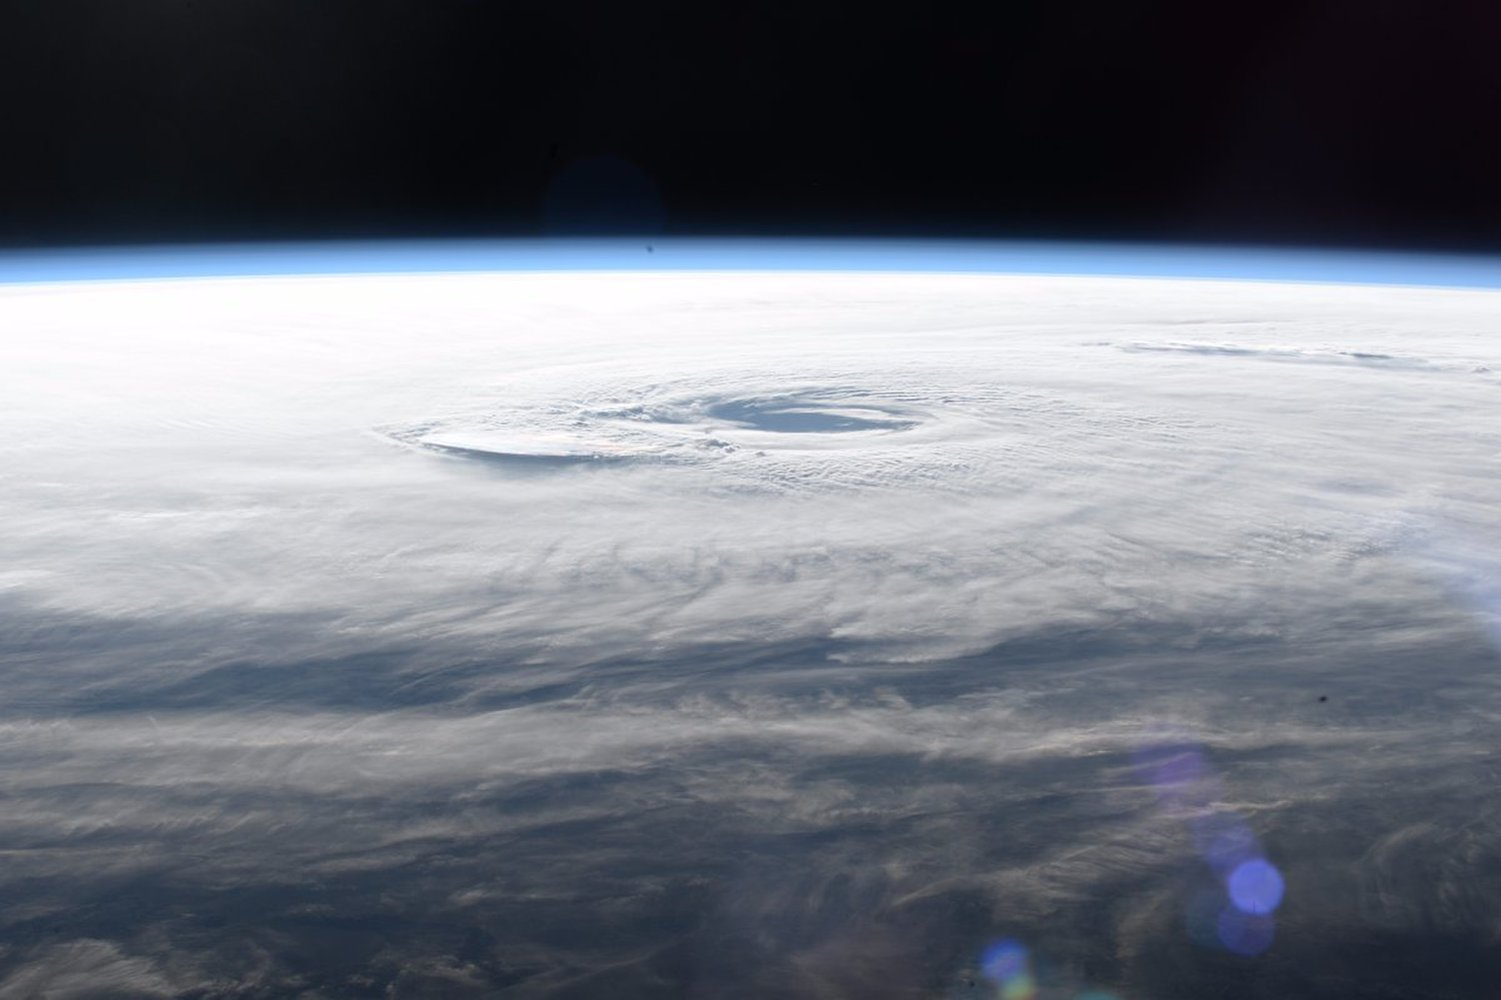 Astronaut's Dramatic Photos Show Hurricane Maria Raging Over Puerto Rico https://t.co/DnJDHc8iDQ https://t.co/osLd7ULeOc